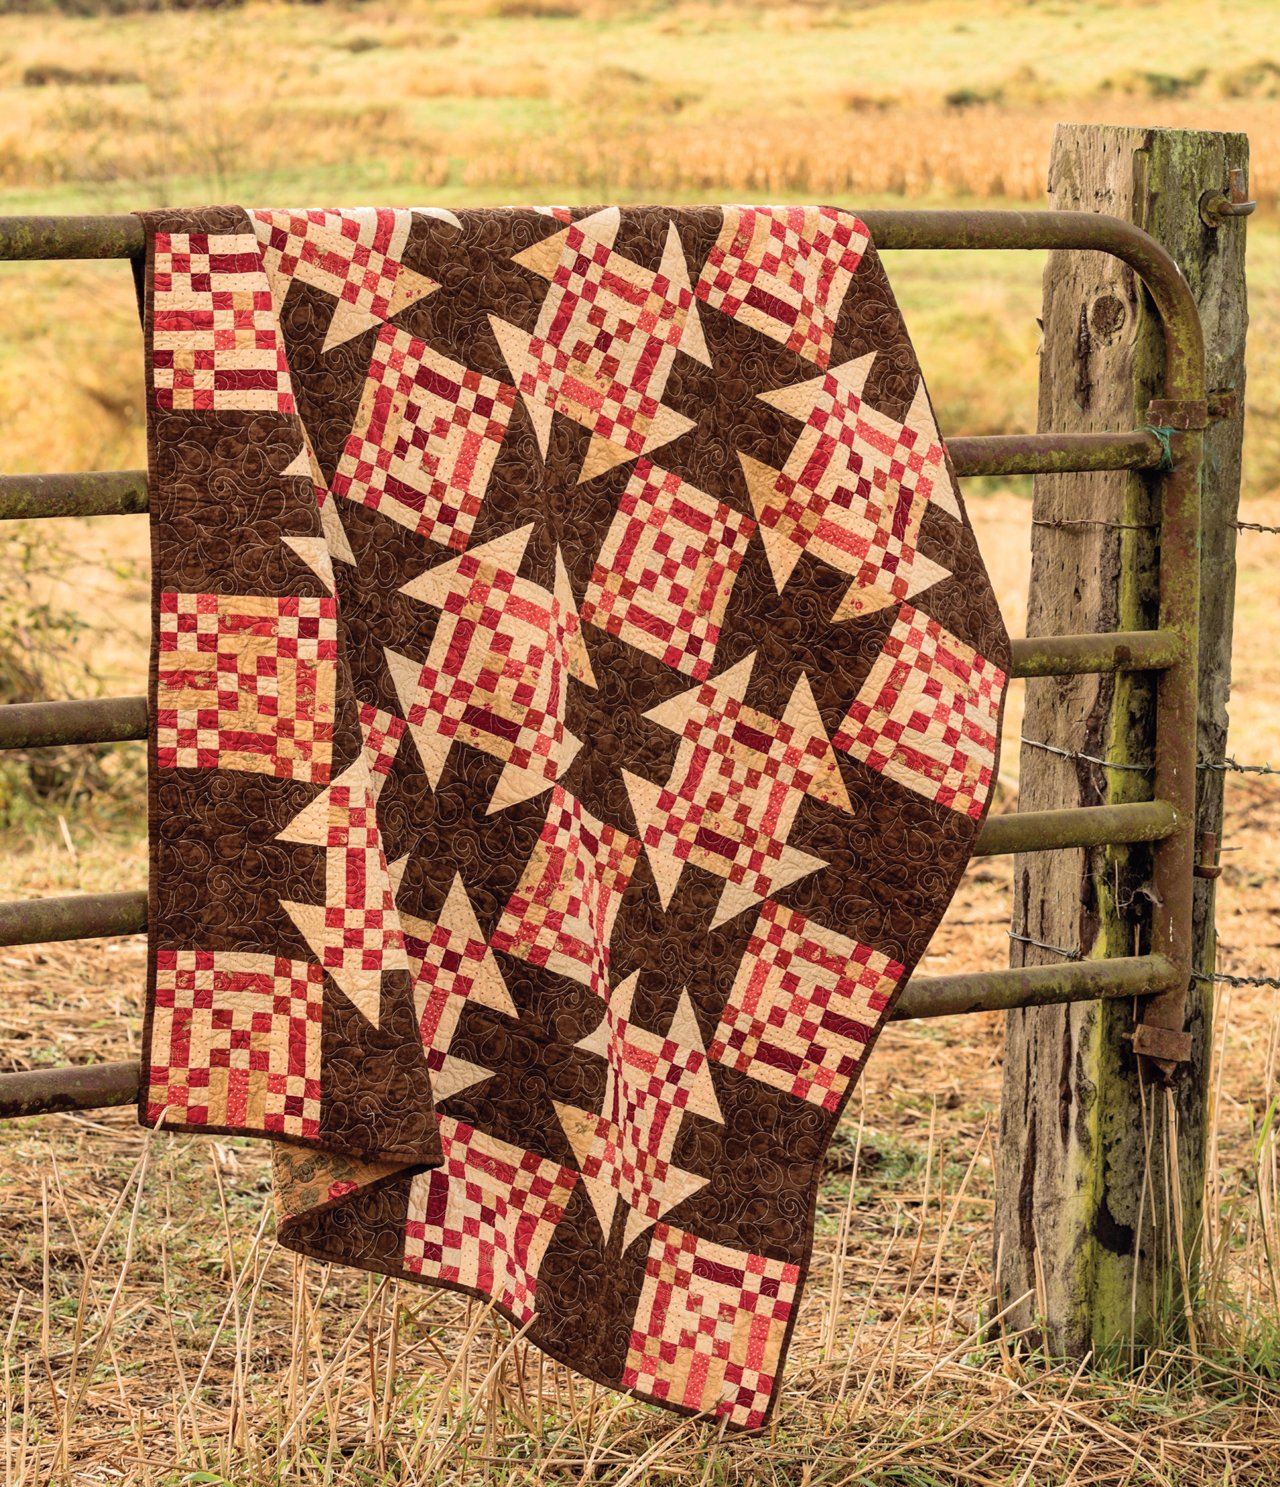 Tis the Autumn Season: Fall Quilts and Decorating Projects ... : tis the season quilt book - Adamdwight.com